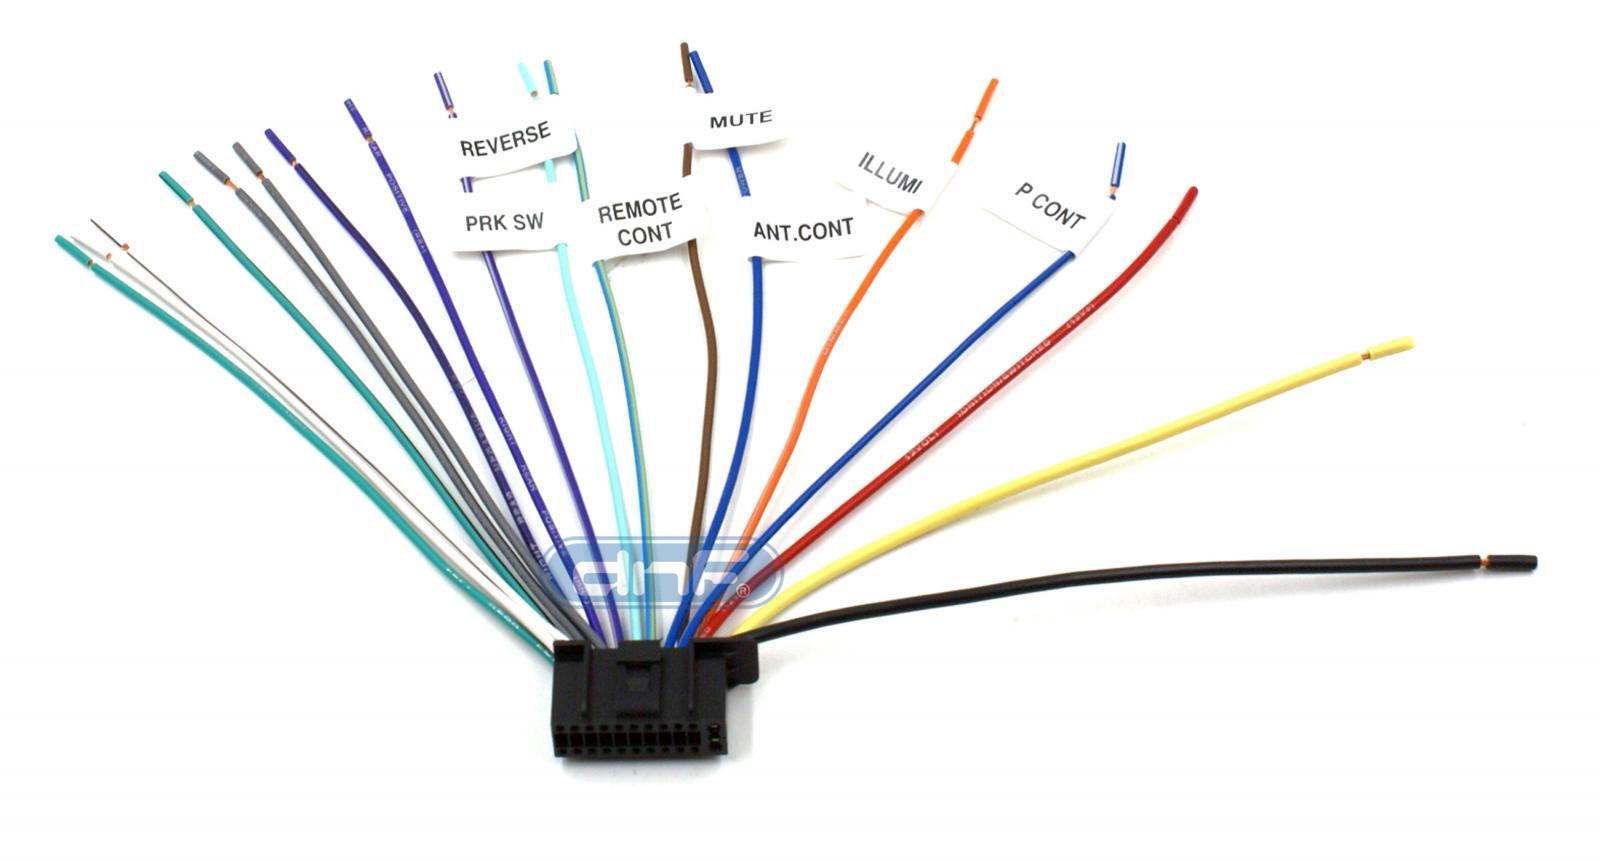 medium resolution of details about kenwood ddx 6019 kvt 512 kvt 514 kvt 516 wiring harness wire harness copper